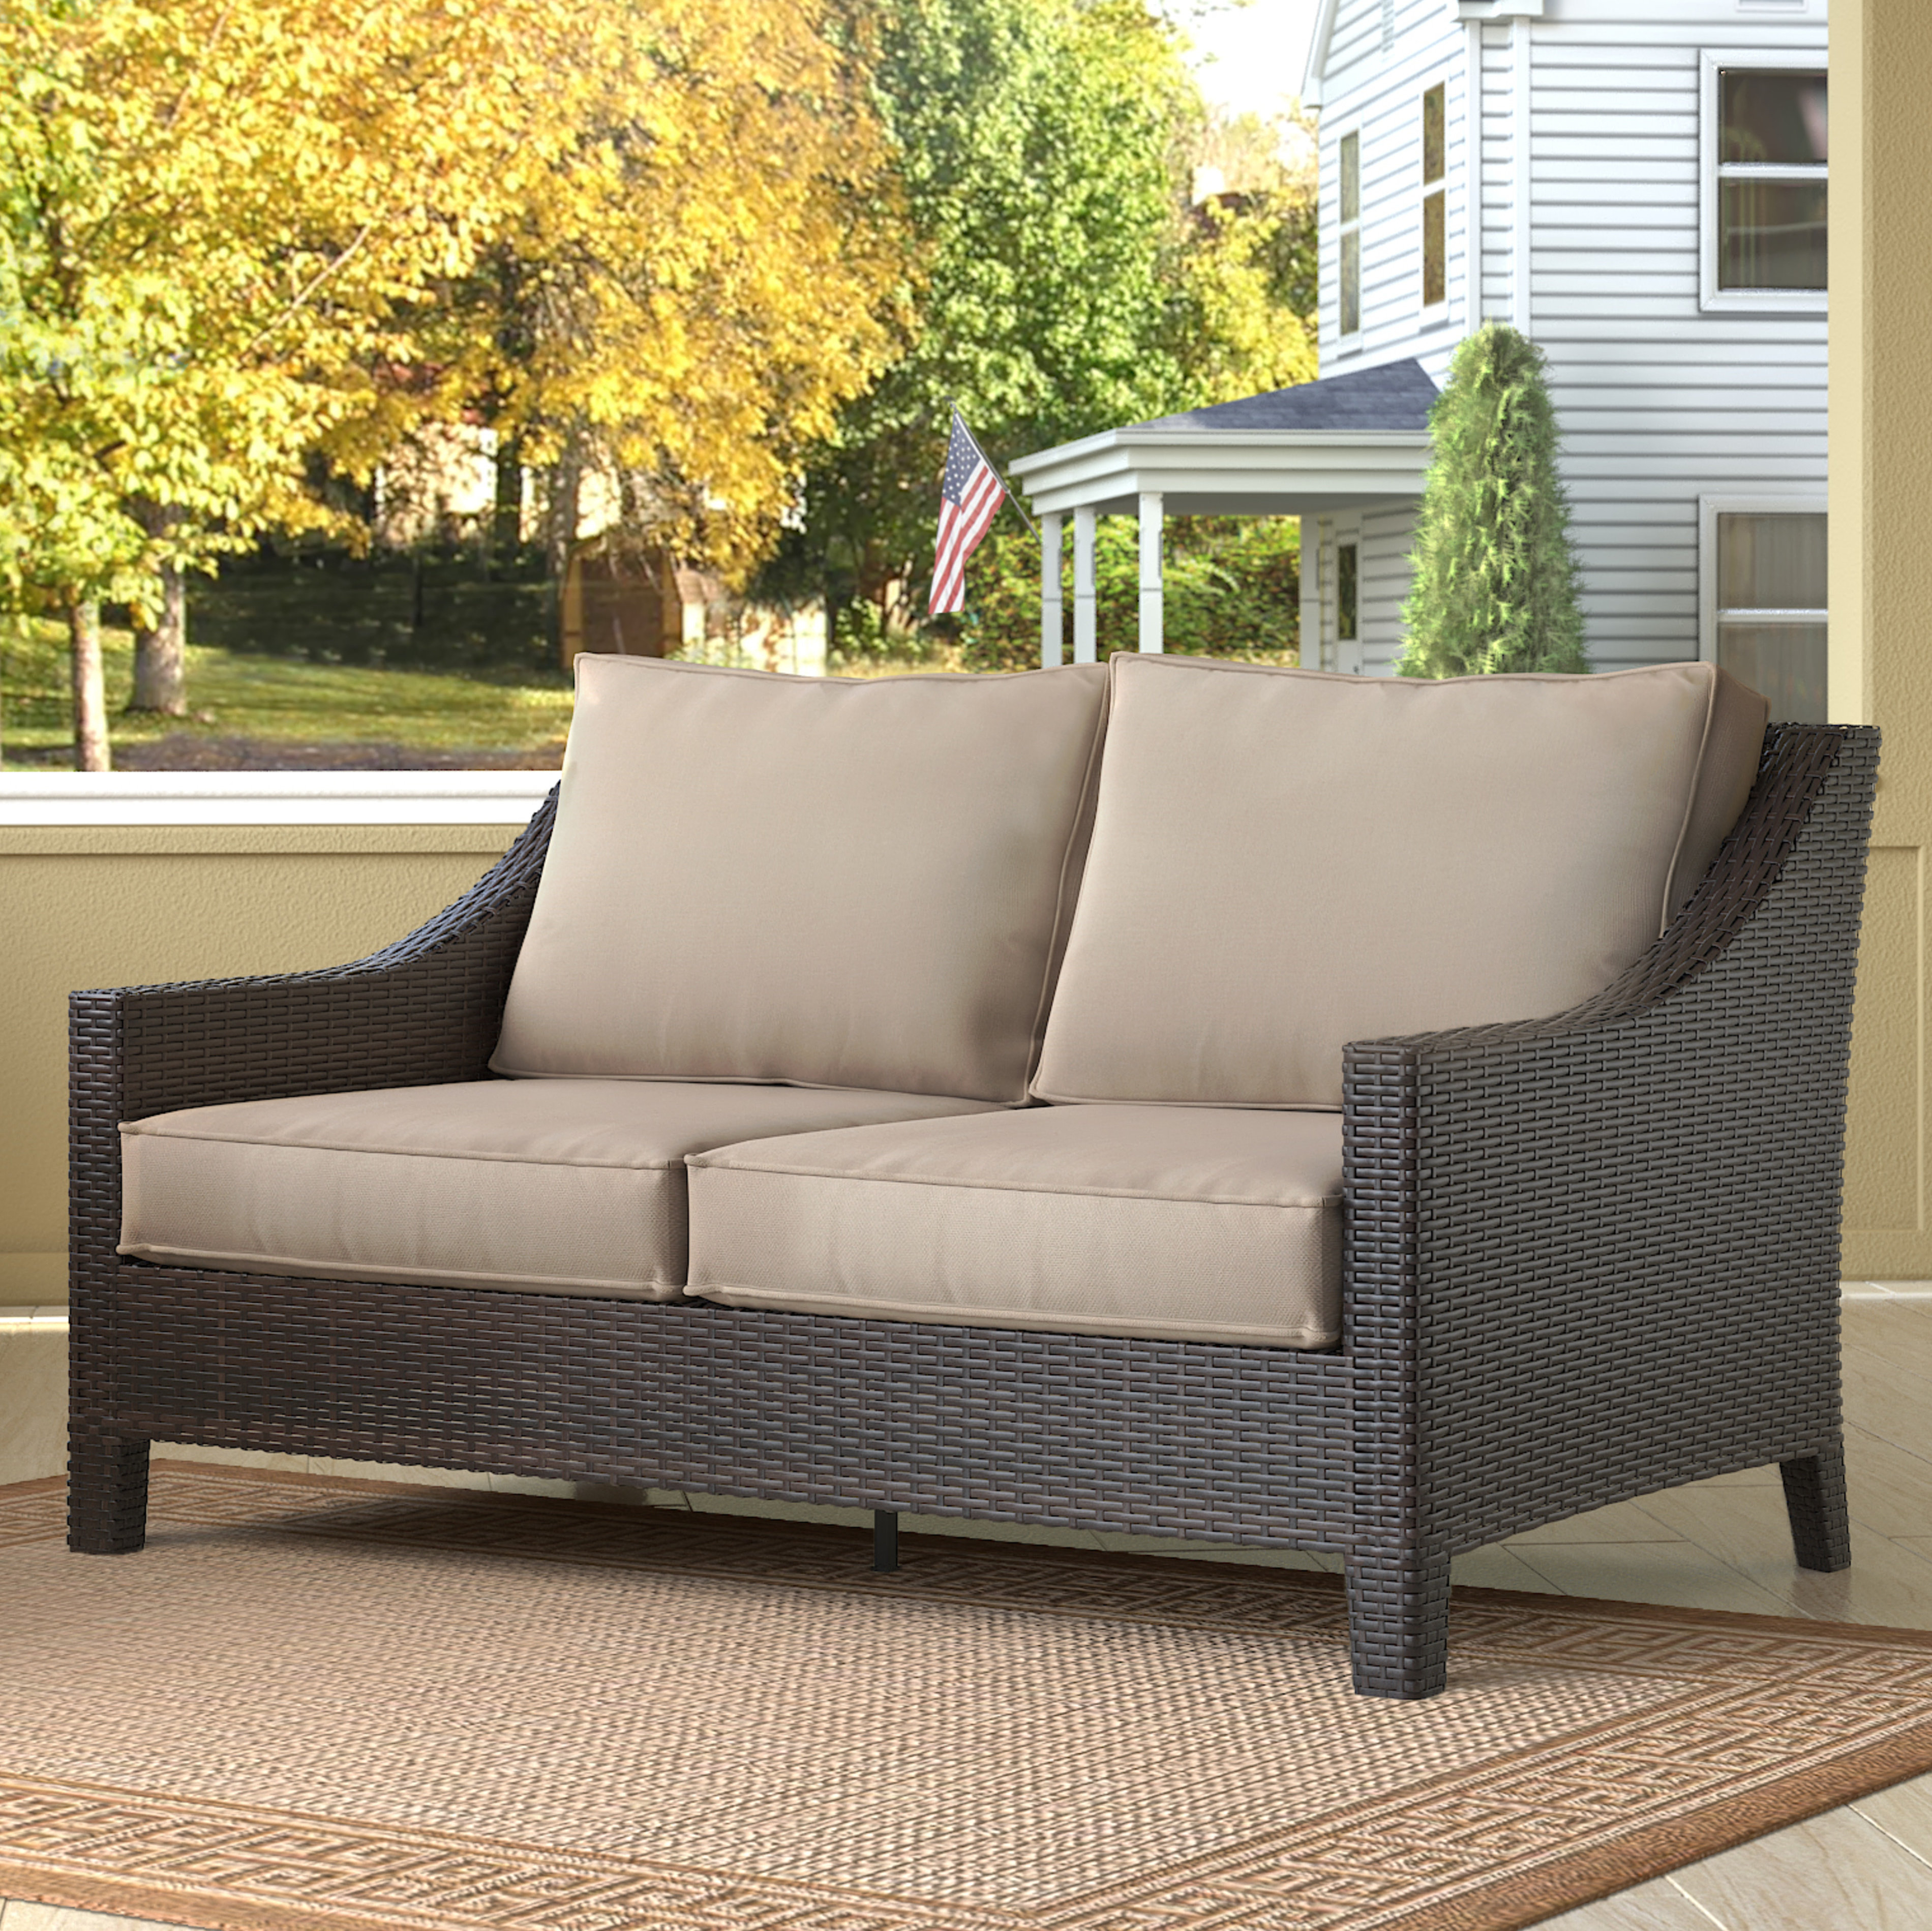 Tahoe Outdoor Wicker Loveseat With Cushions Regarding Best And Newest Loggins Loveseats With Cushions (View 19 of 20)